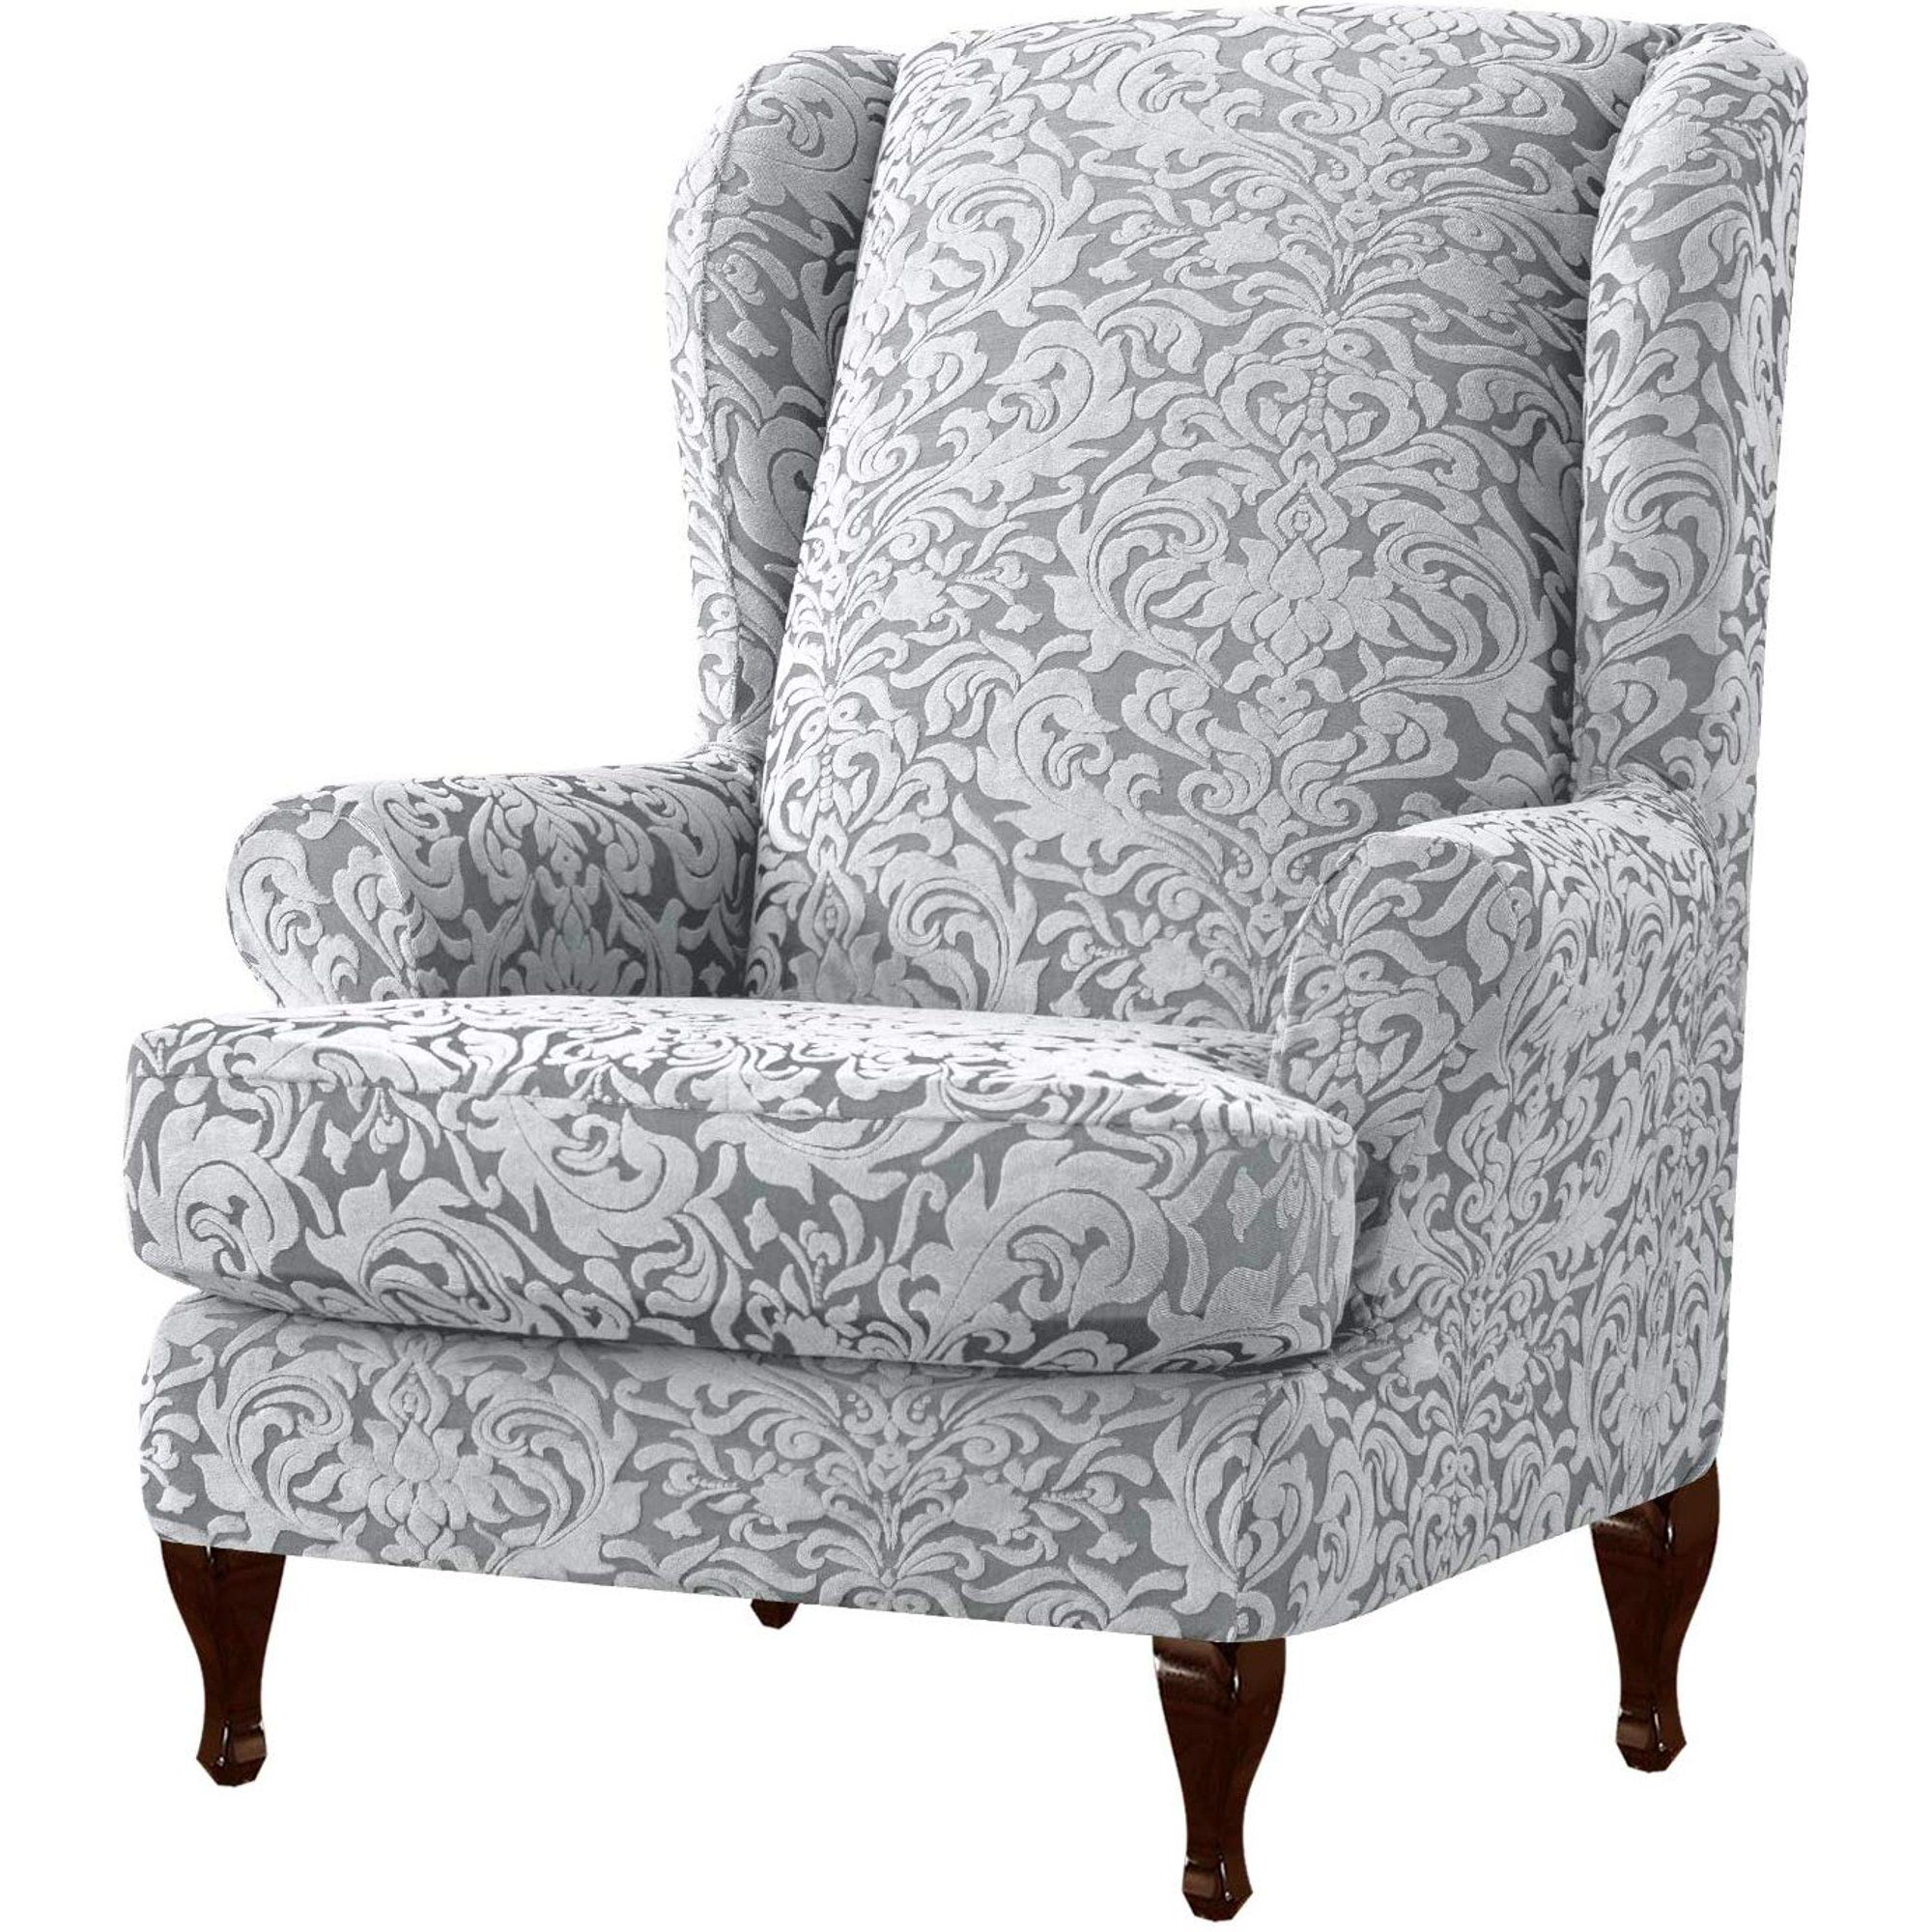 Subrtex Stretch 1Piece Jacquard Damask Wing Chair